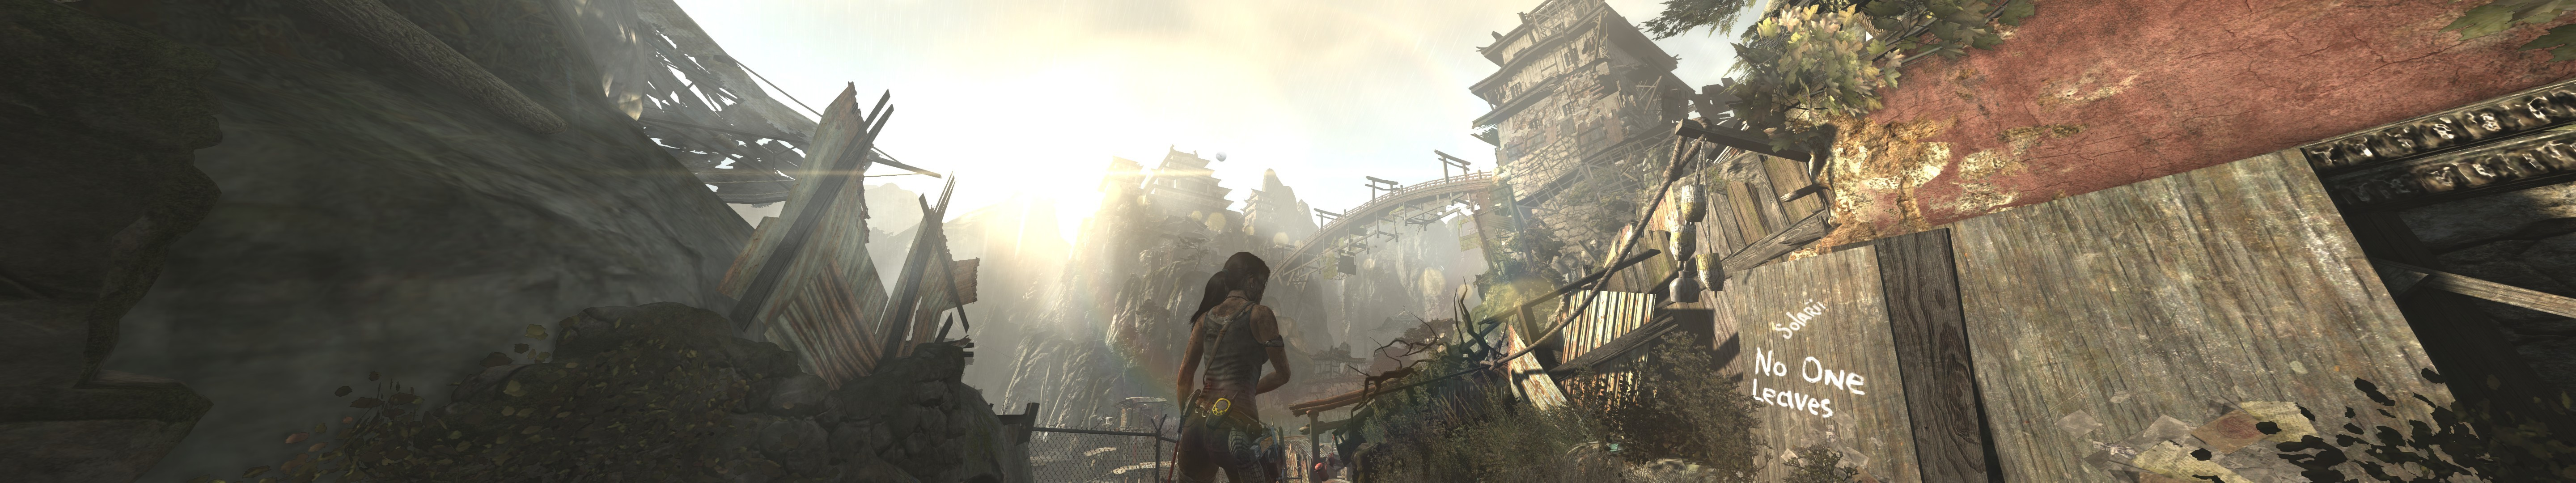 General 5760x1080 Tomb Raider Eyefinity video games triple screen